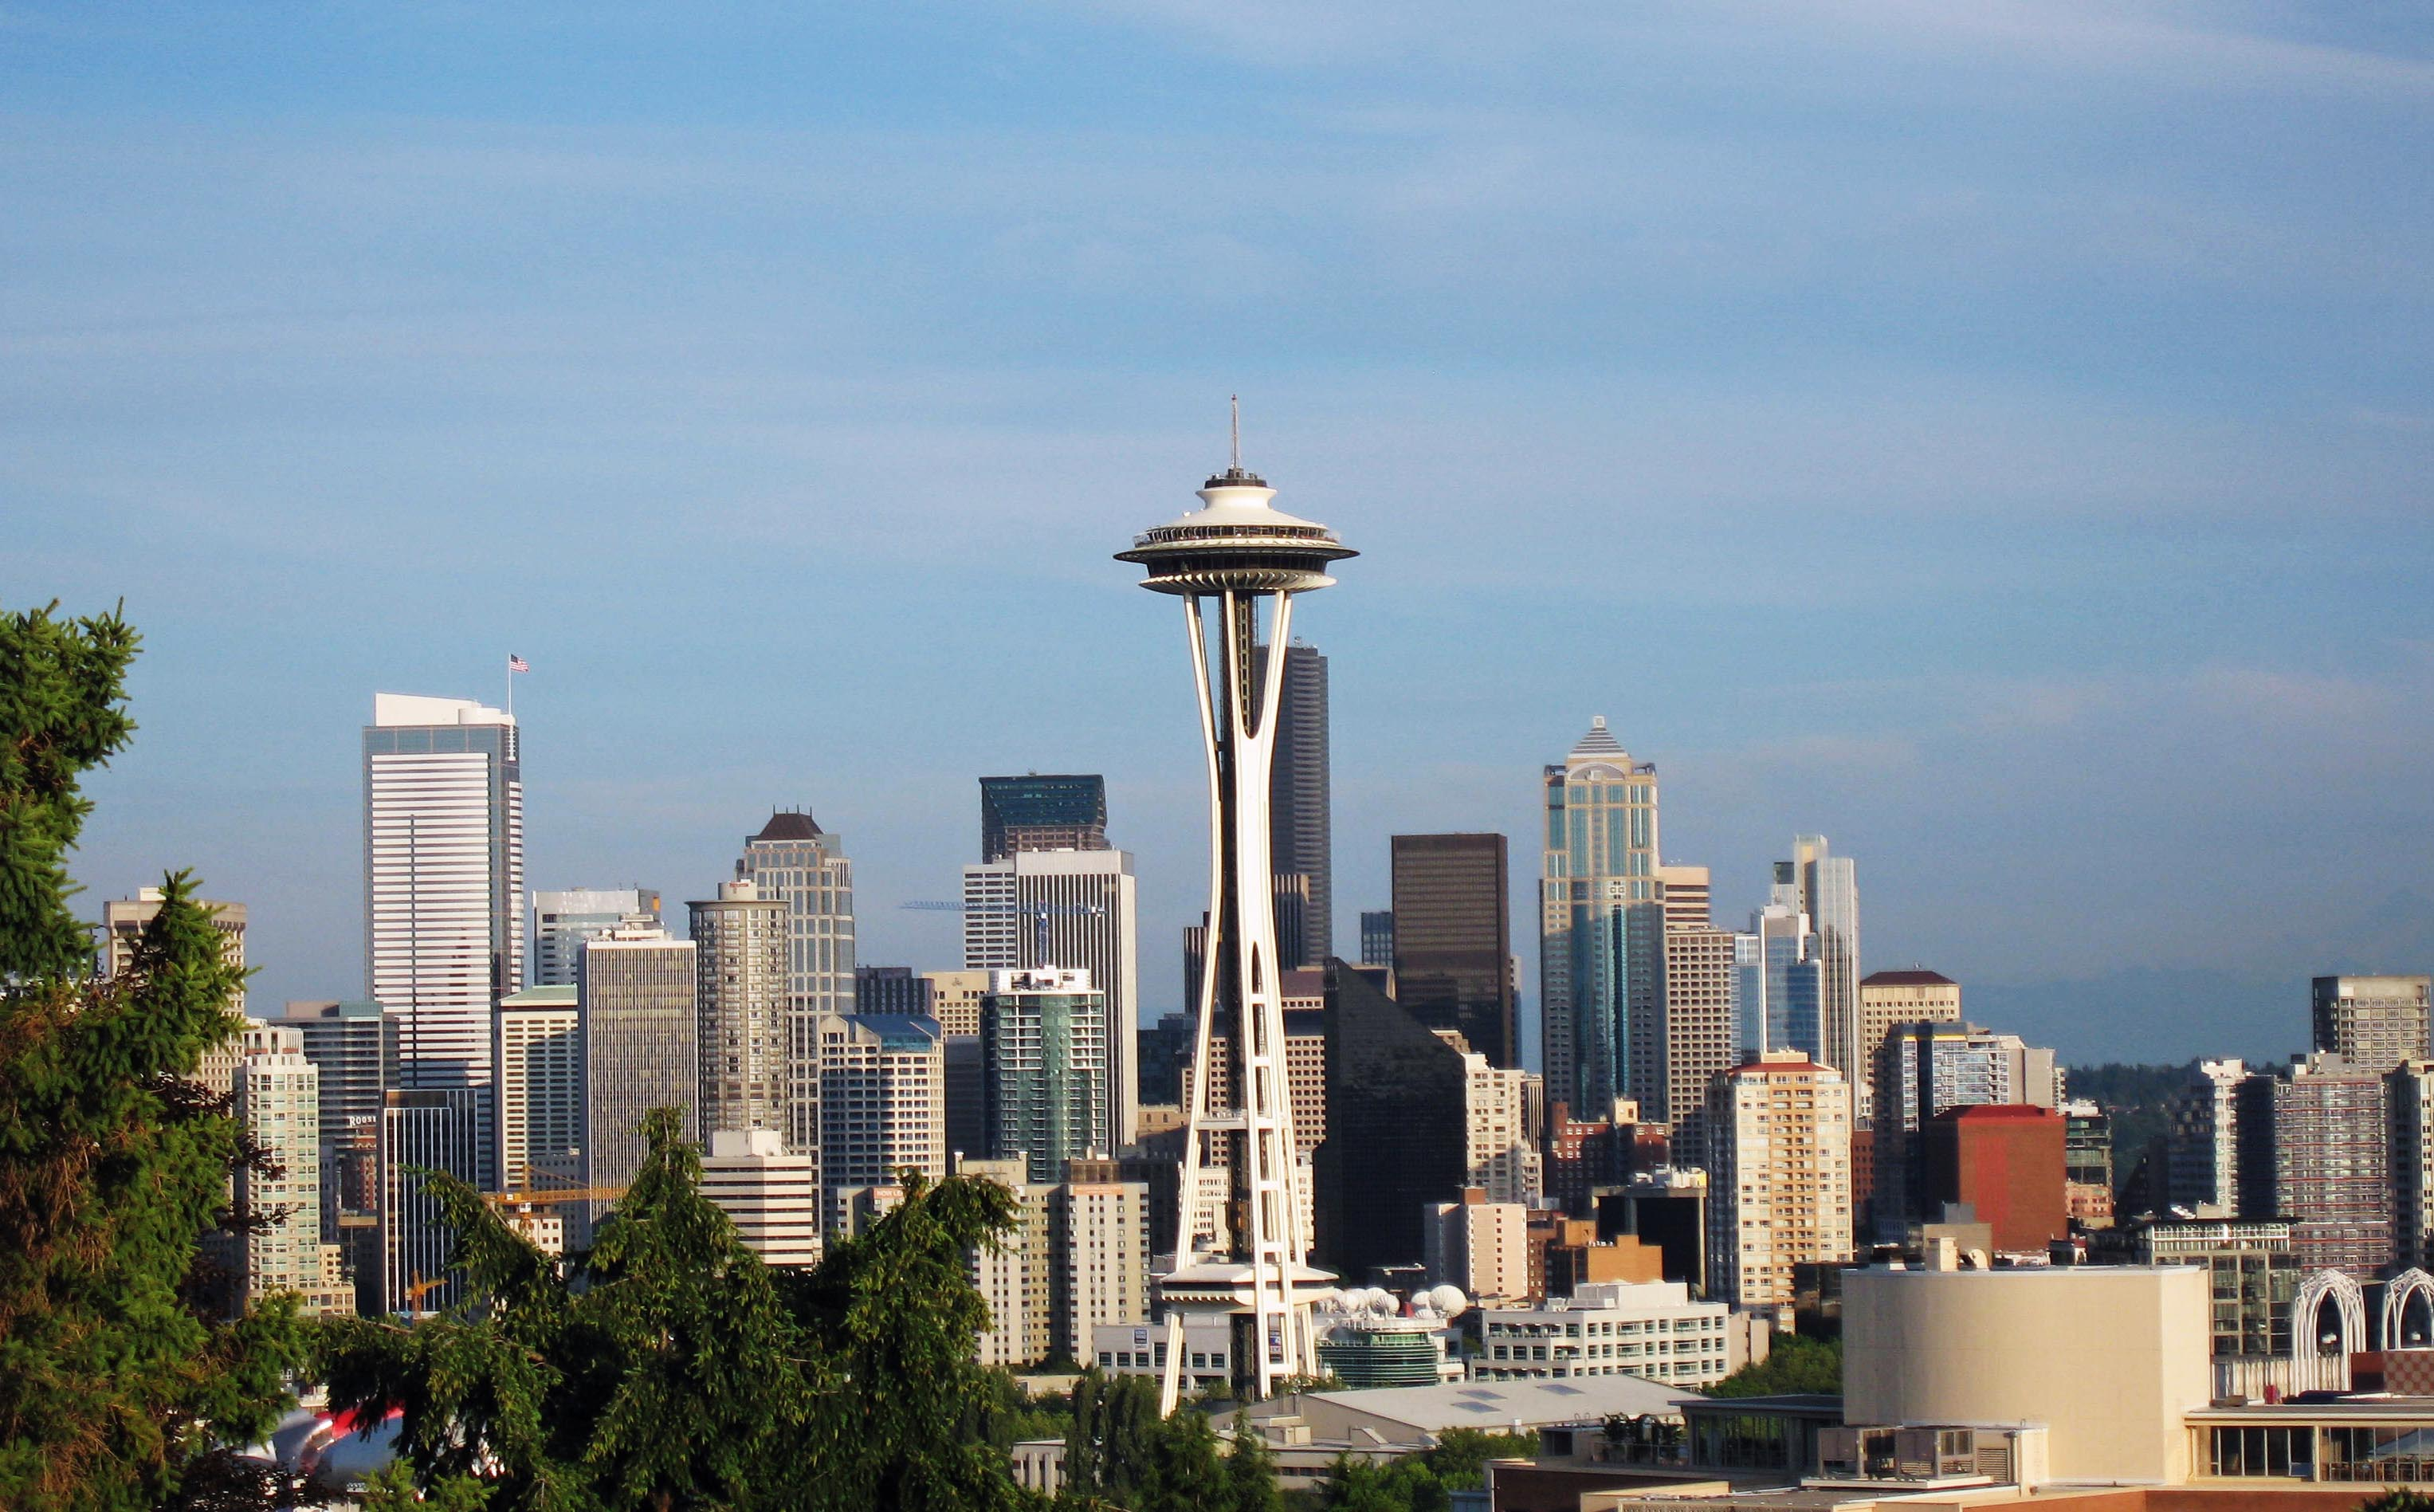 Seattle vacation package deals, Seattle discount travel, Seattle online travel booking, Seattle discount cruises, Seattle travel deals, Seattle cheap travel, Seattle cruise vacation, Seattle hotel accommodations, Seattle travel reservations